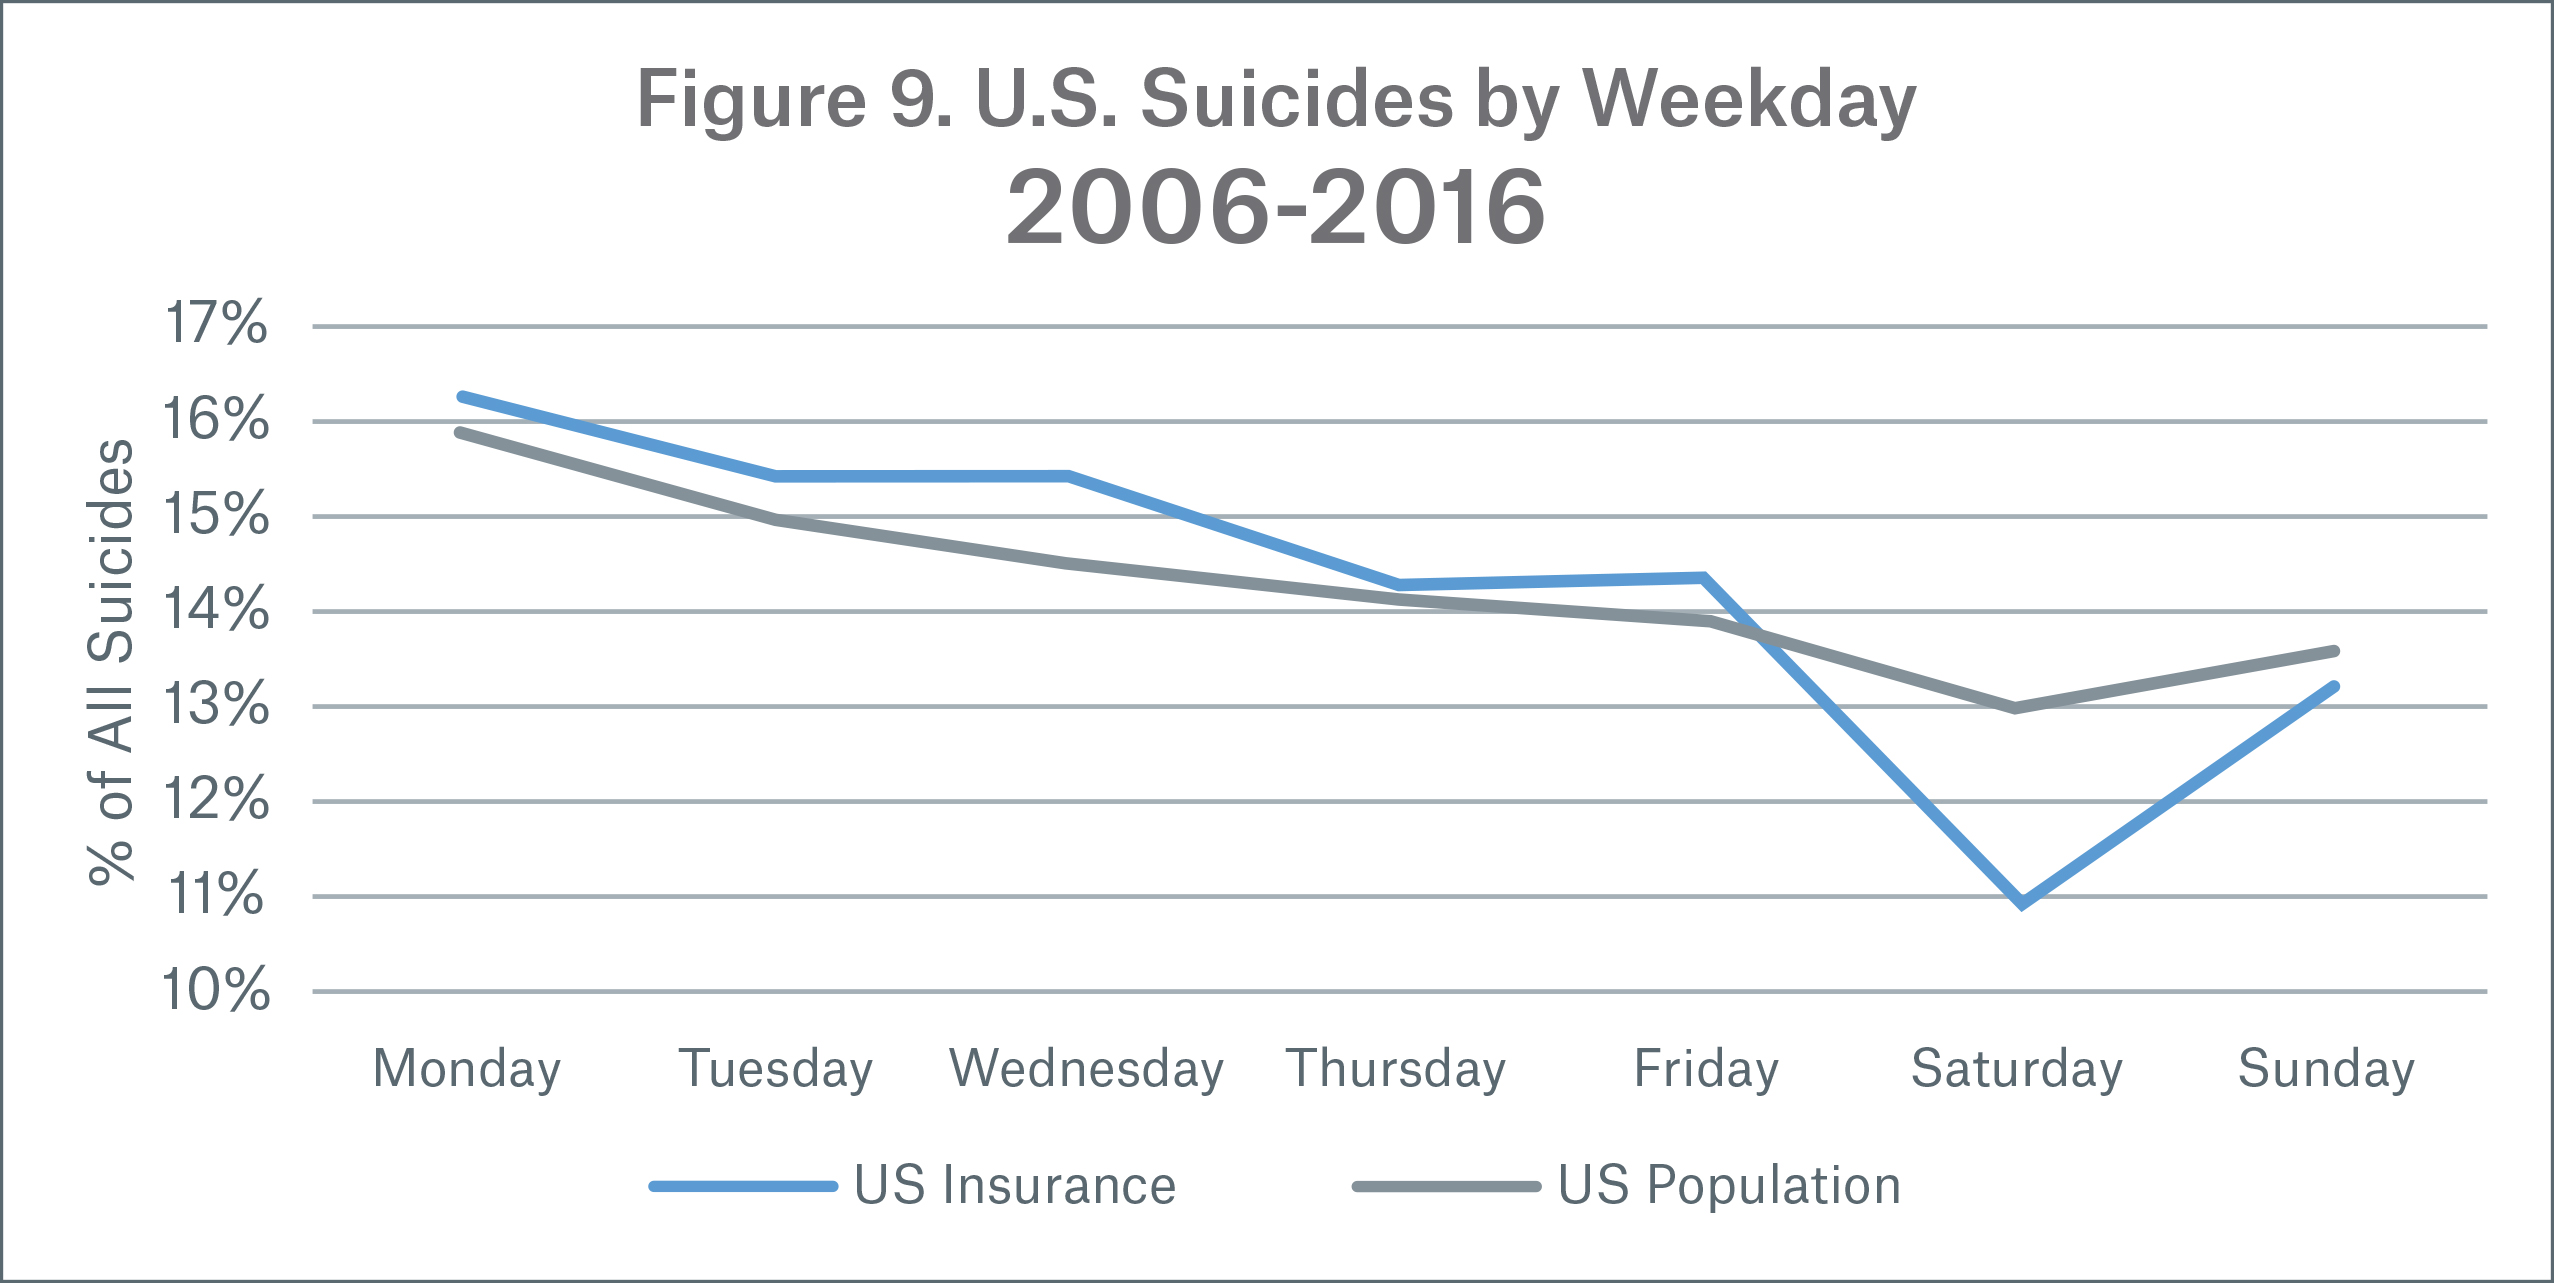 Figure 9 Image U.S. Suicides by Weekday